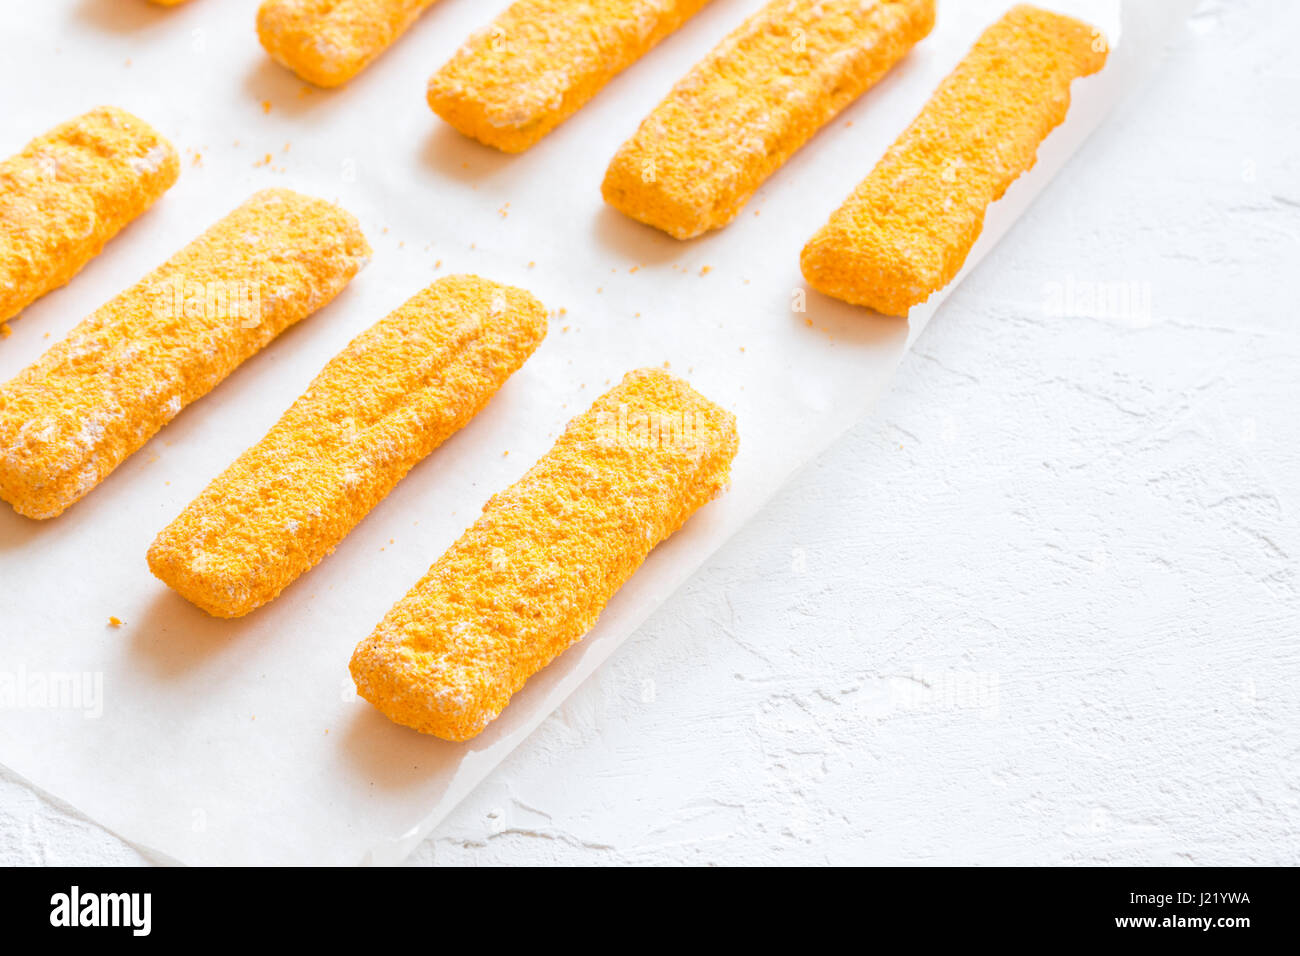 Frozen fish sticks, fish fingers on paper and white background, copy space. Convenience food, seafood, fish food Stock Photo